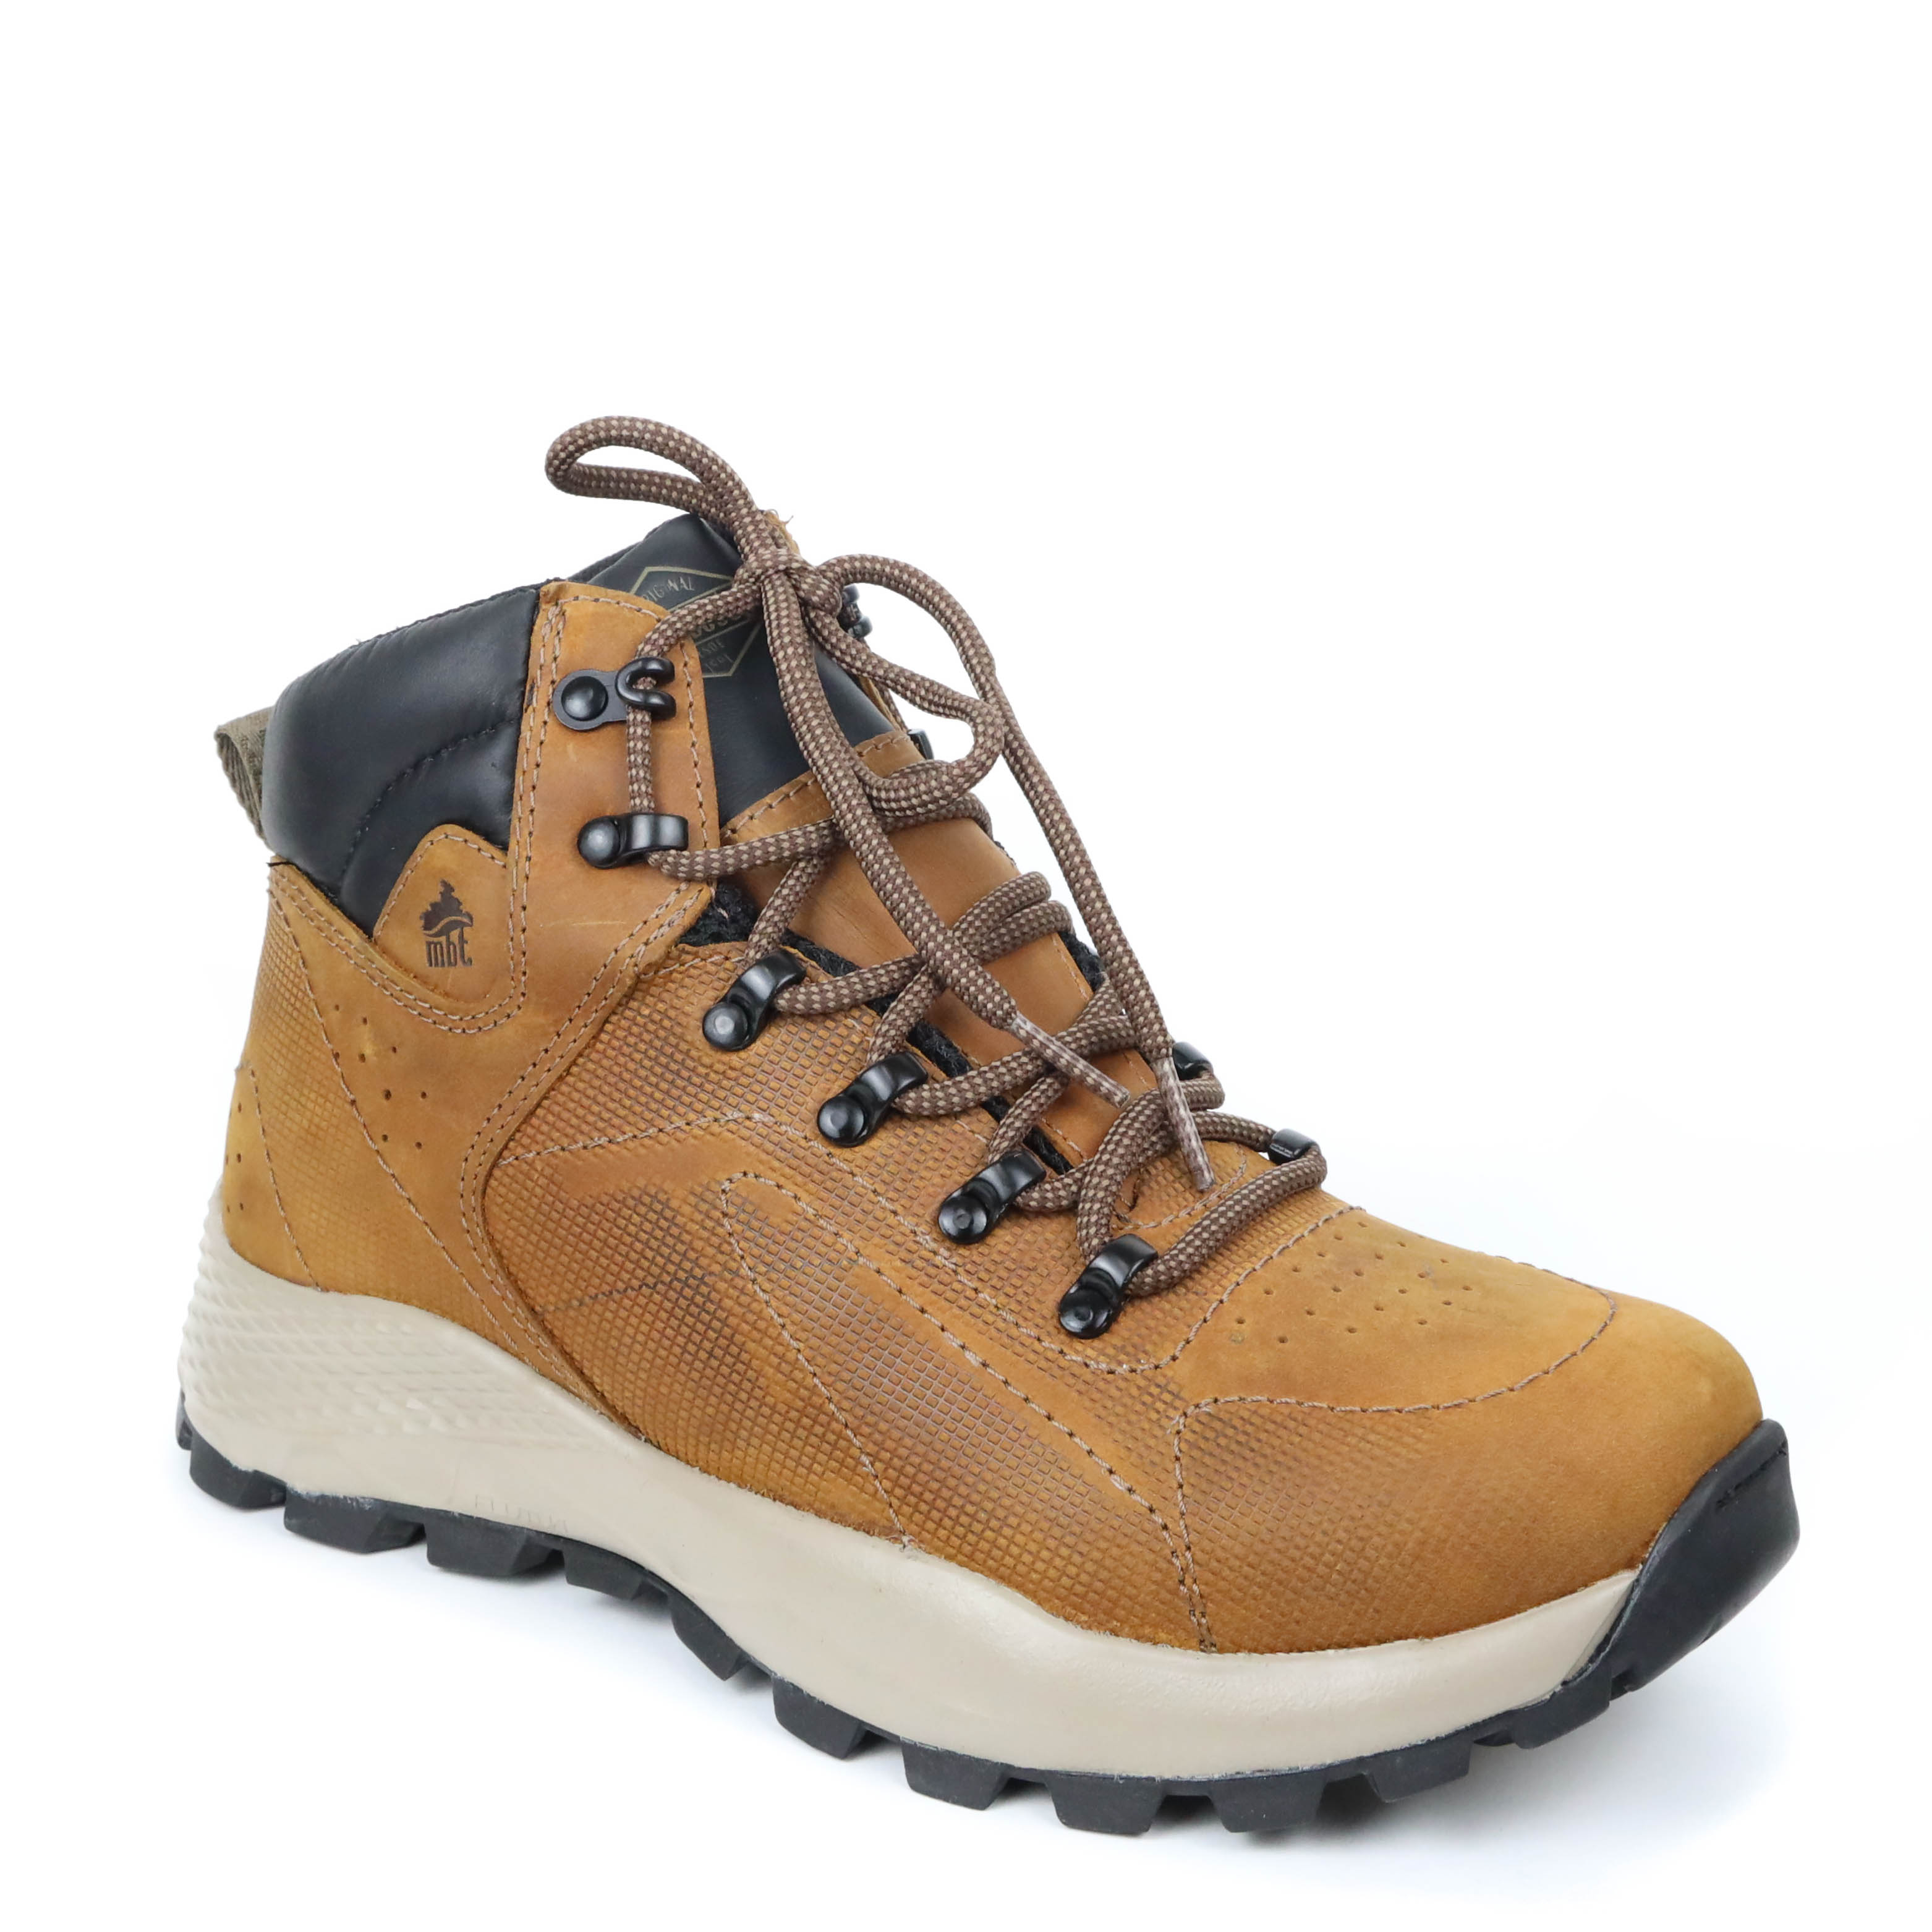 Bota Adventure Macboot Cano Alto